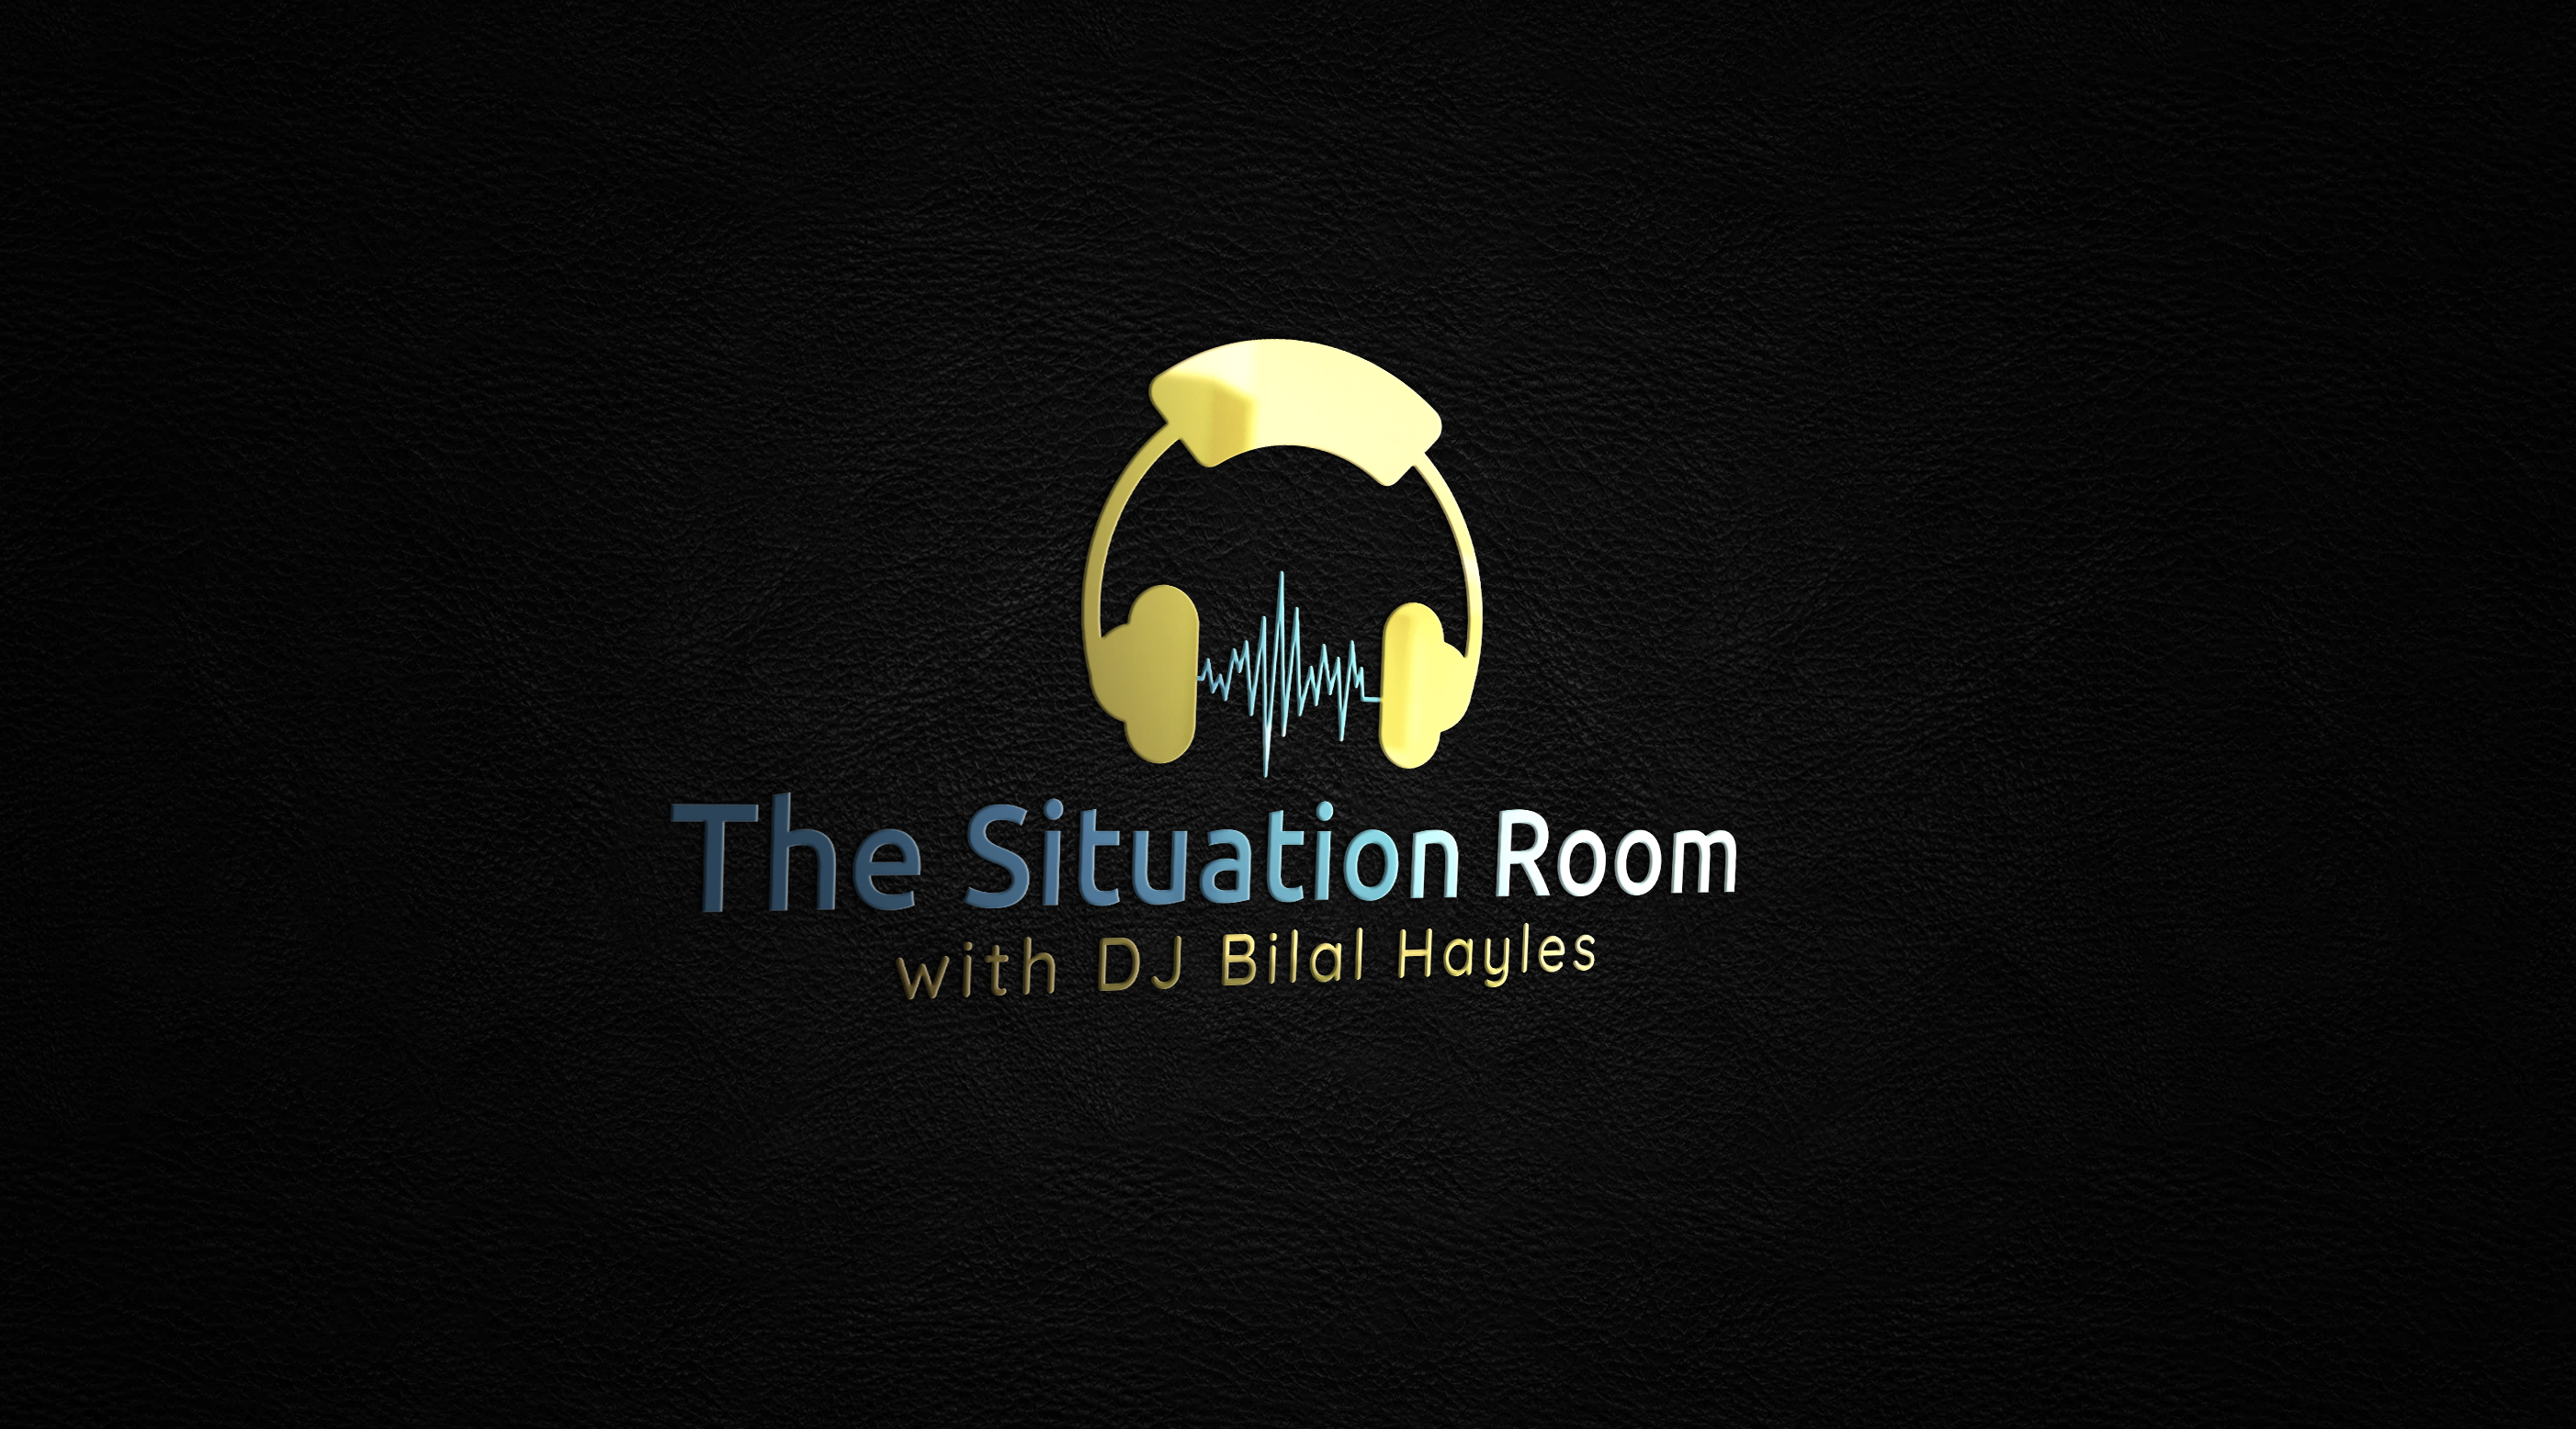 The Situation Room logo